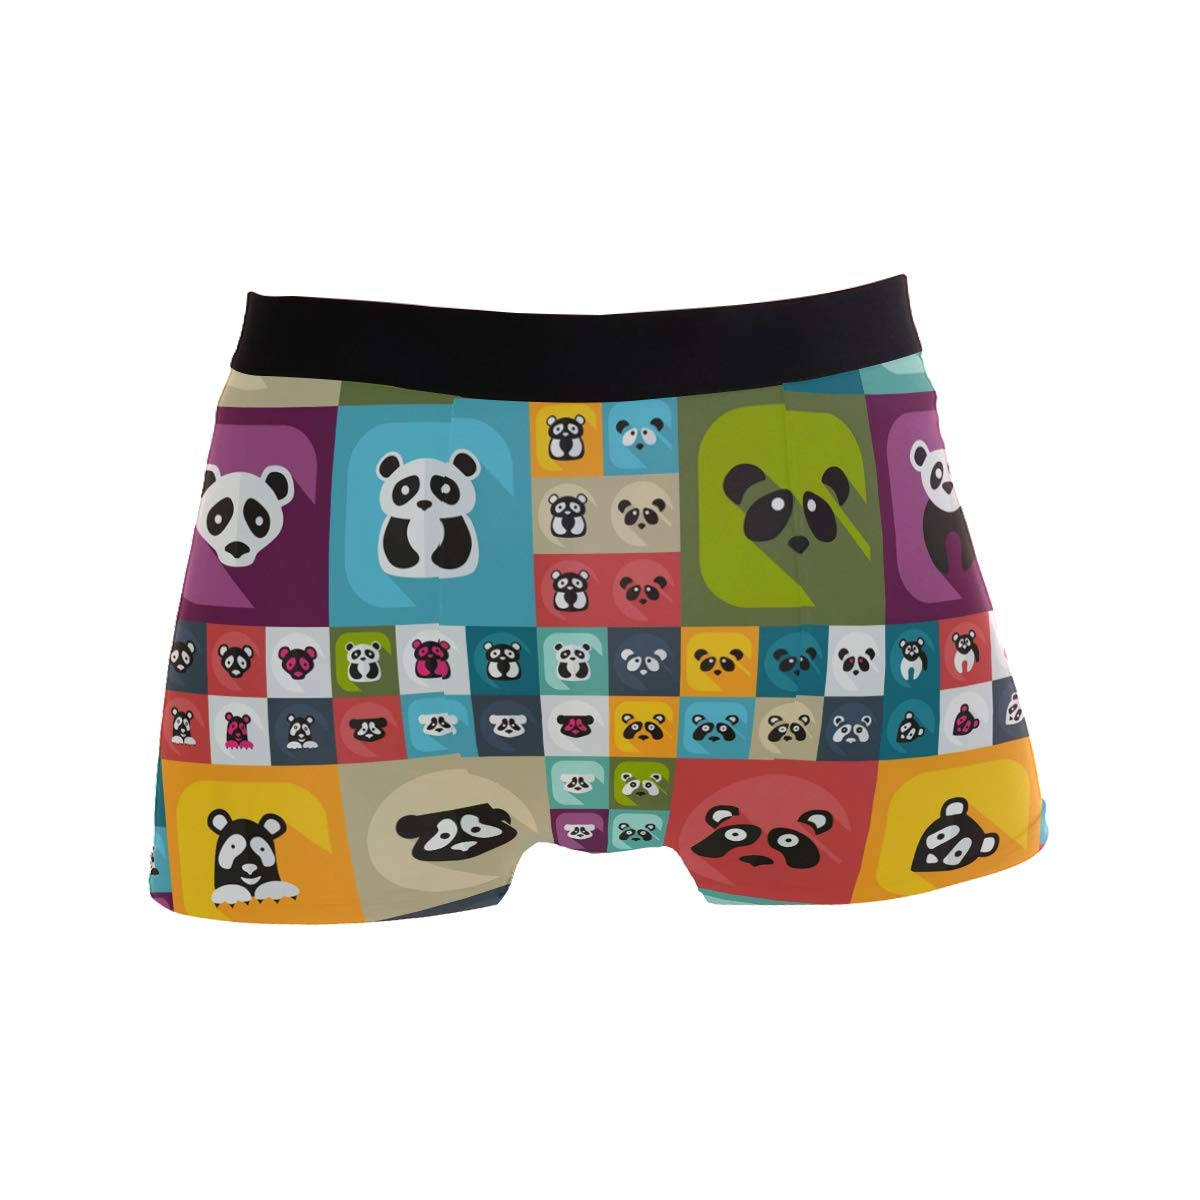 ZZKKO Modern Design Pandas Mens Underwear Boxer Briefs Breathable Multi